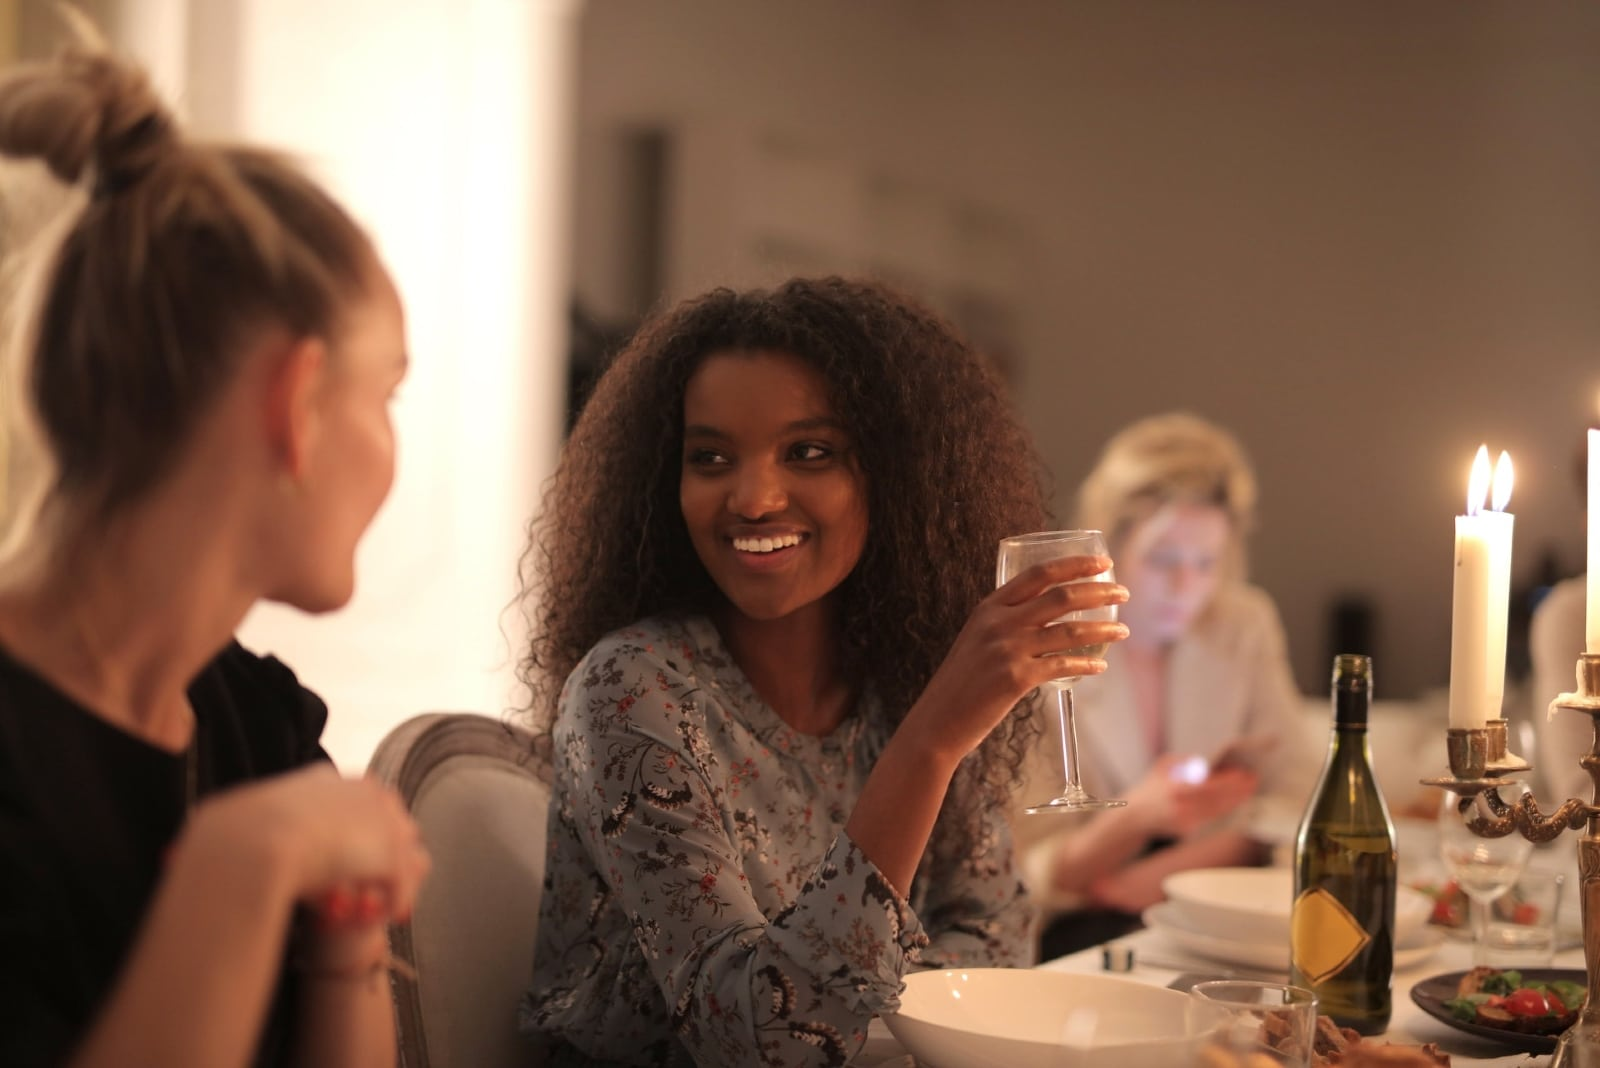 woman holding glass of wine while looking at woman